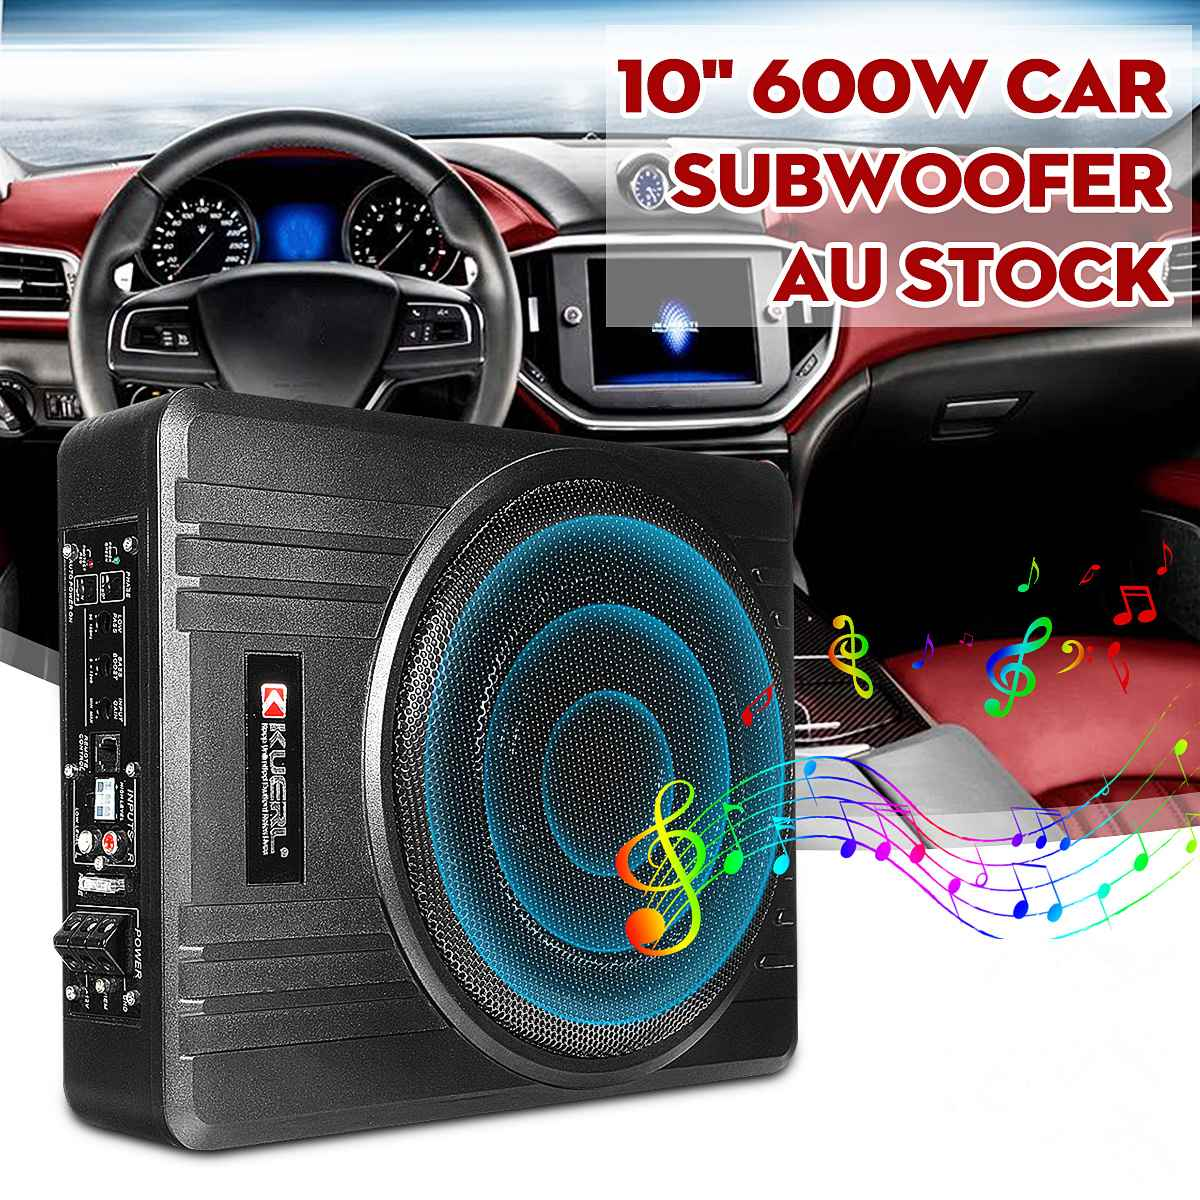 10 Inch 600W Car Subwoofer Car Audio Slim Under Seat Active Subwoofer Bass Amplifier Speaker Car Amplifier Subwoofers Woofer